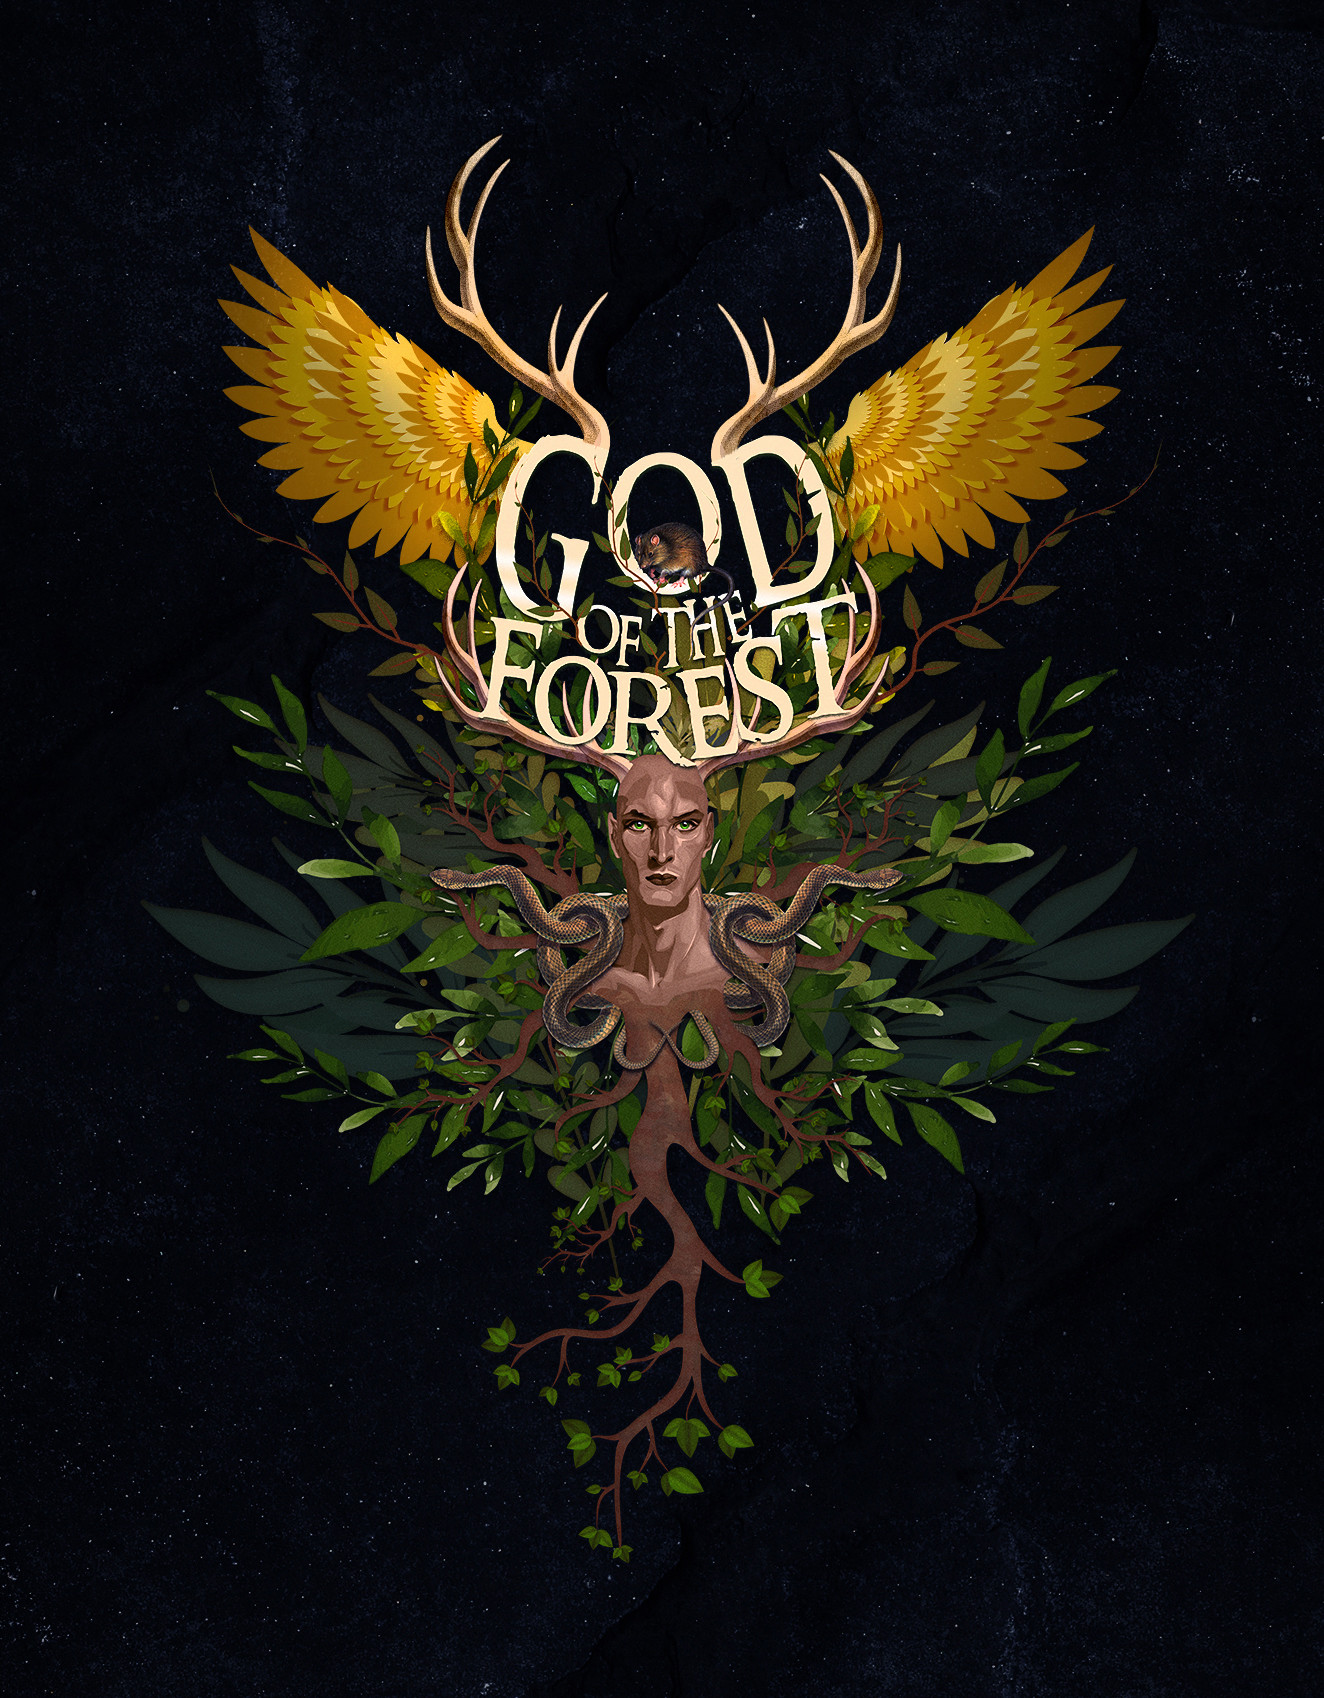 Raiyan momen god of the forest 1